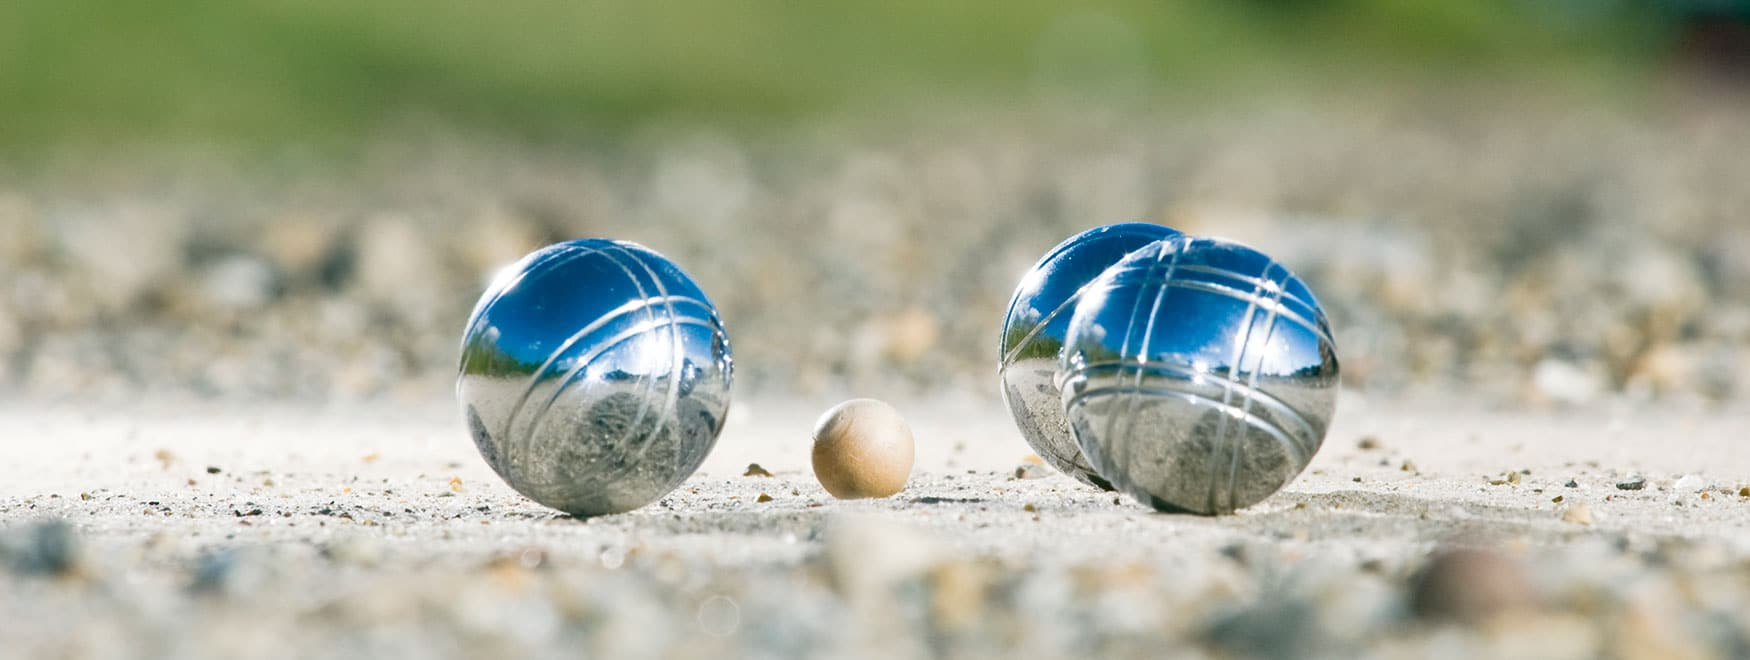 Pétanque (French bowling)